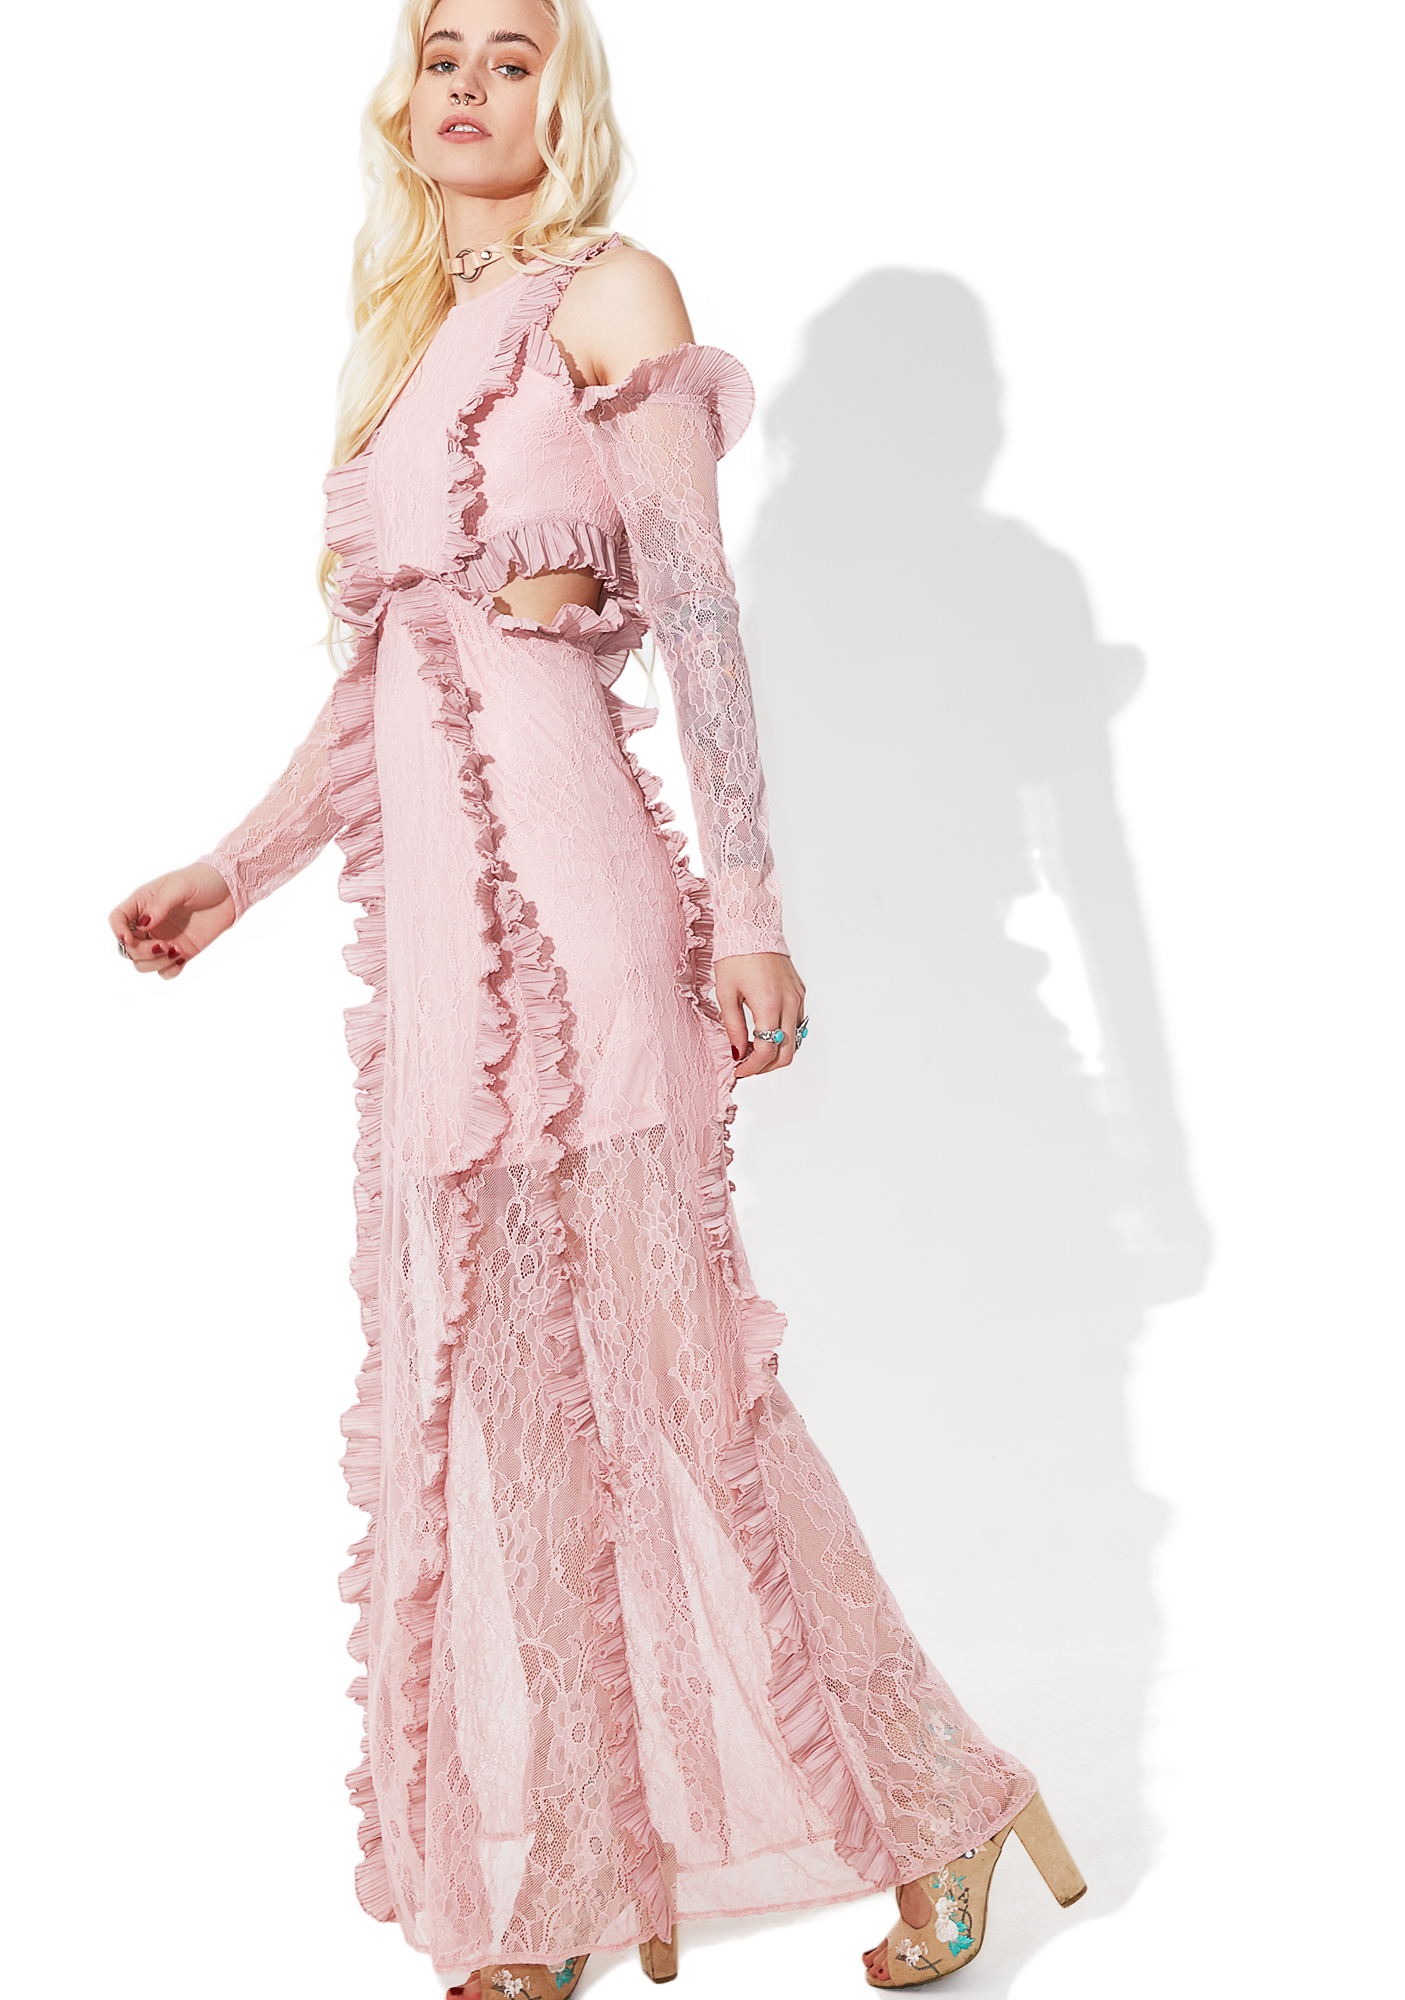 Glamorous Tribute Ruffled Maxi Dress